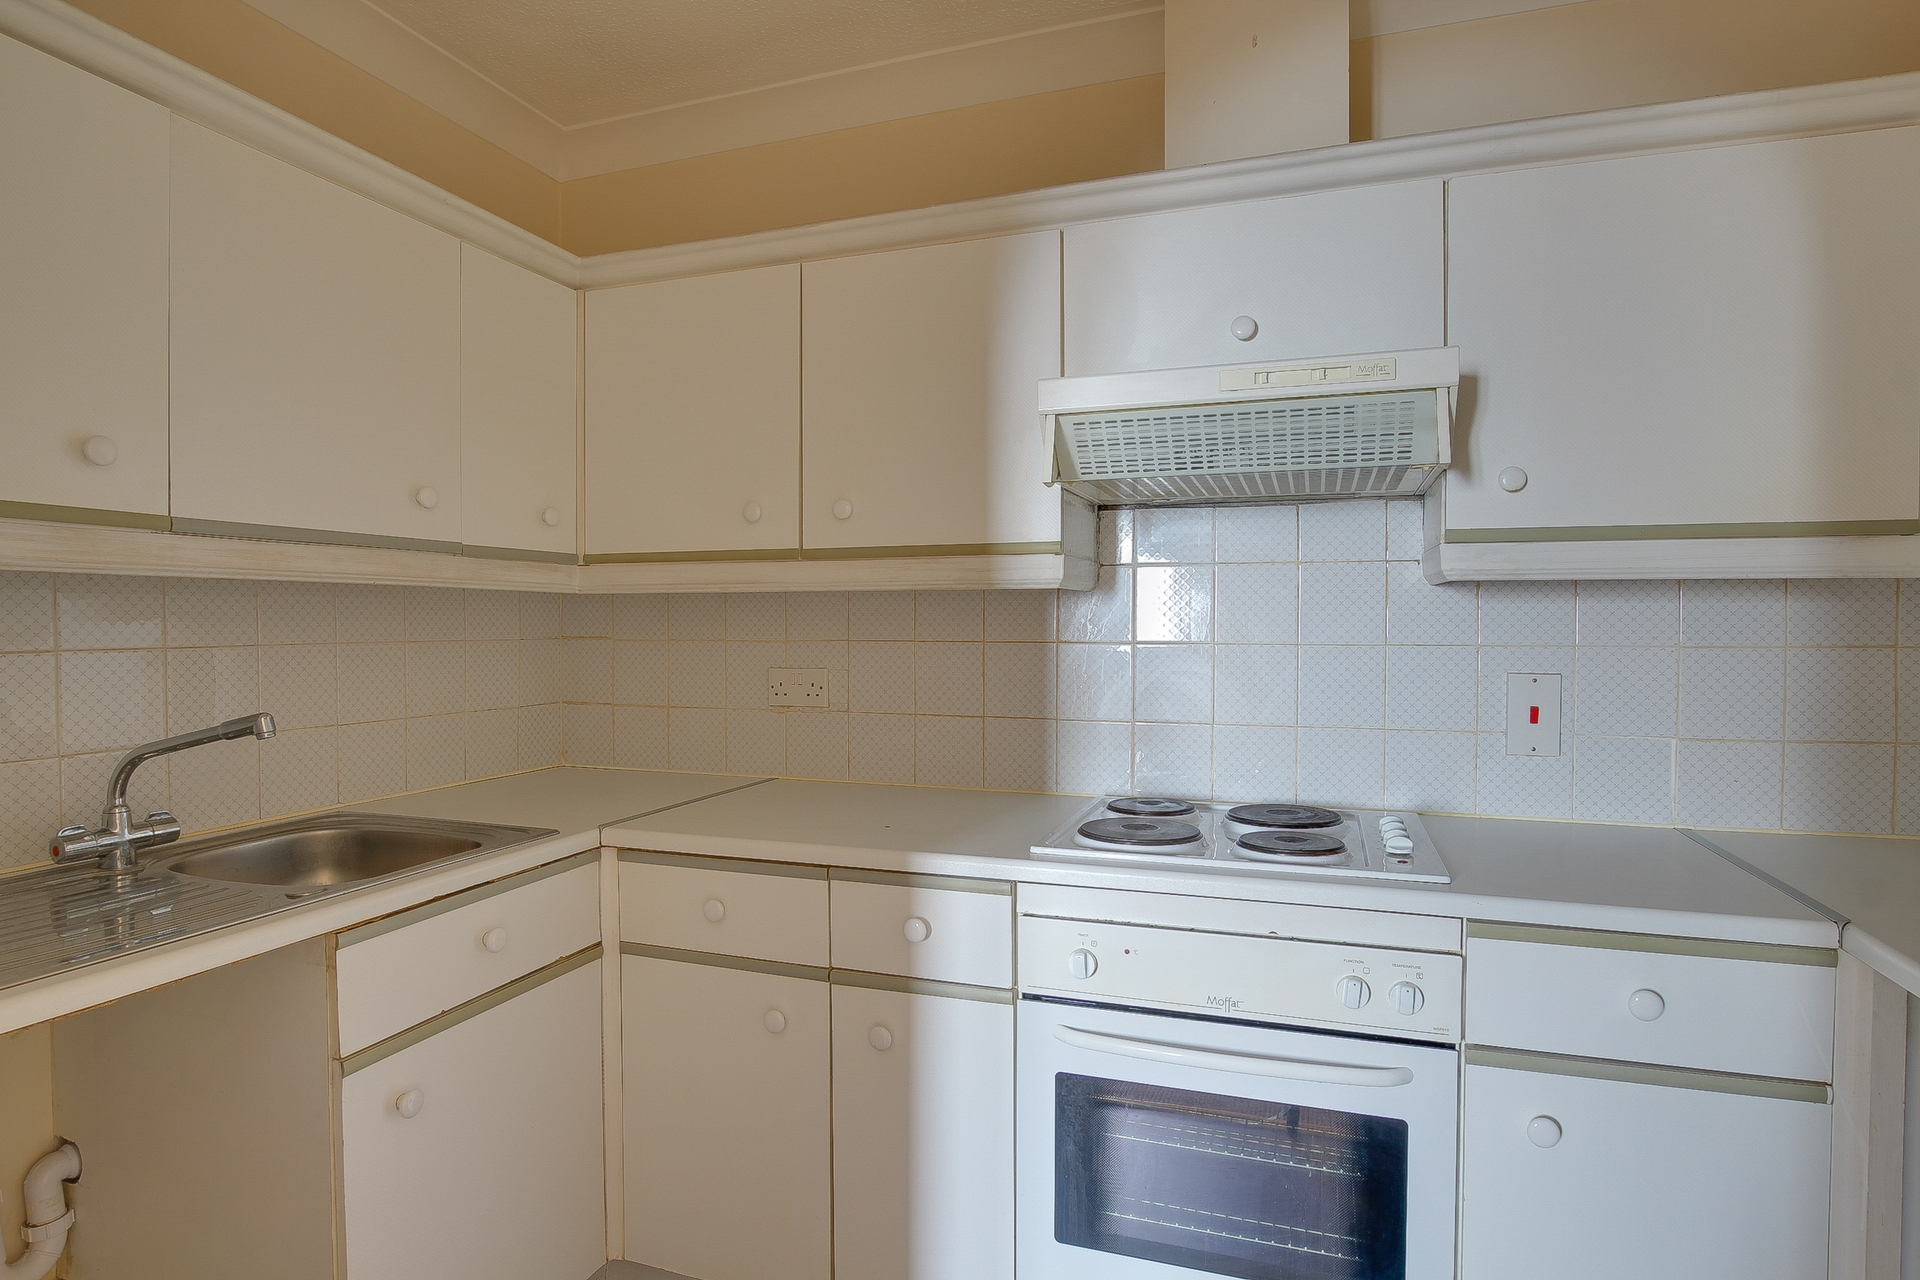 2 bed flat to rent in Victoria Road, Ramsgate, CT11 3